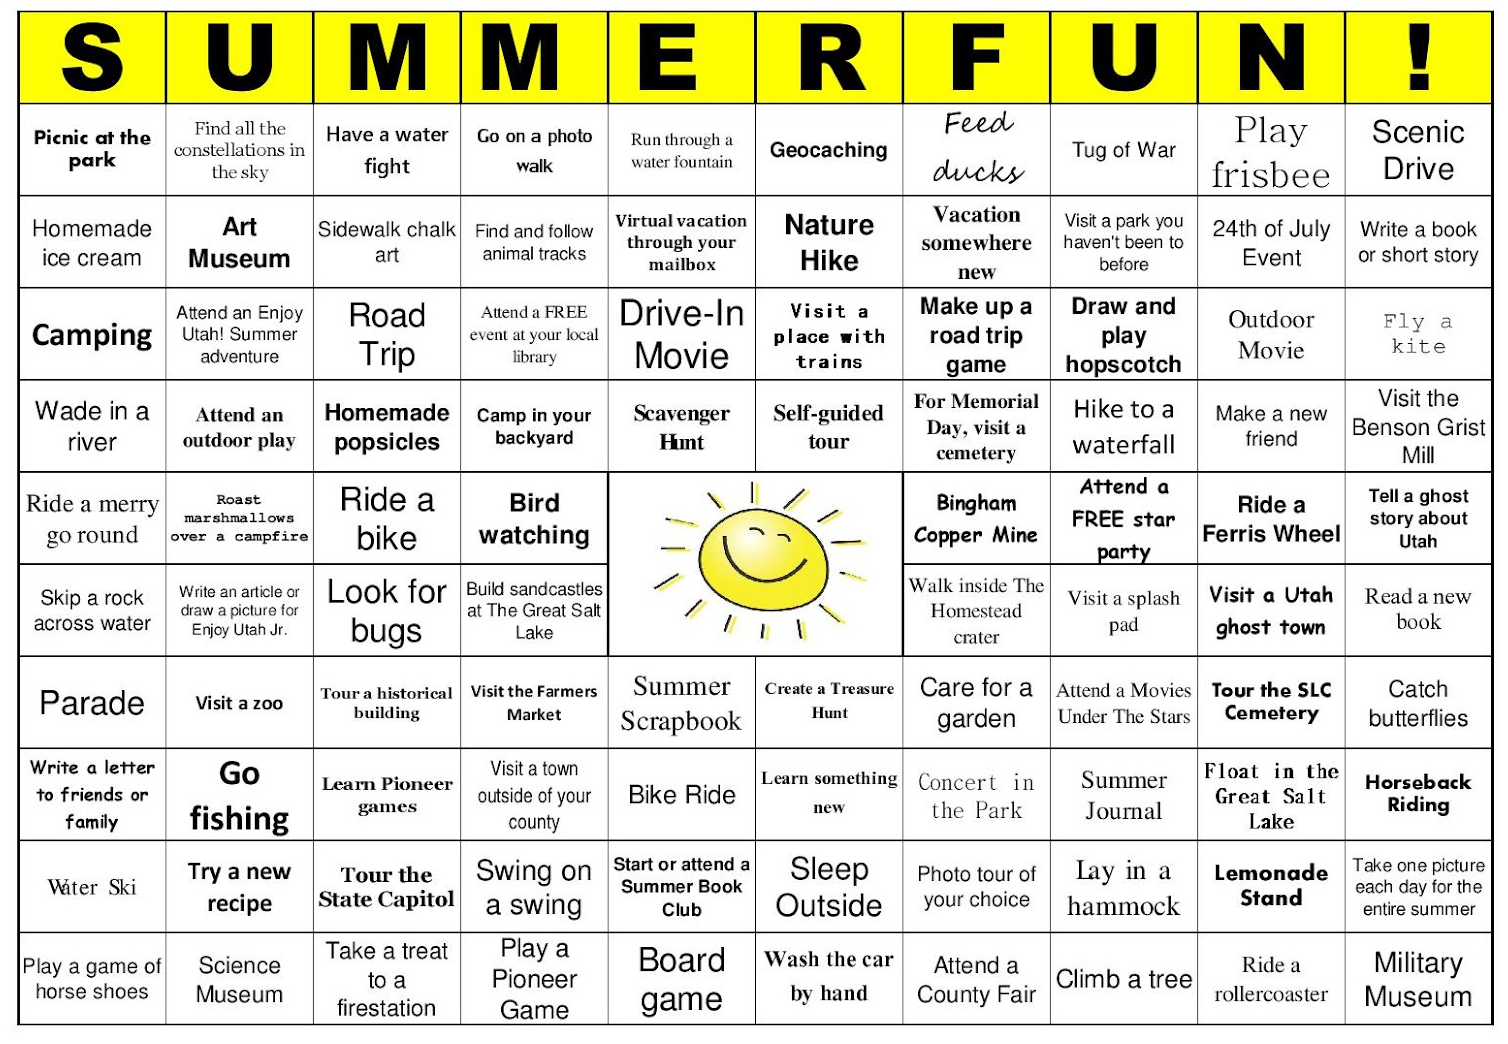 Bingo icebreaker template people bingo rules amp cards icebreaker ideas bingo an icebreaker that helps learn interesting facts about other antarctica antarctic treaty system need see all really classroom team building maxwellsz